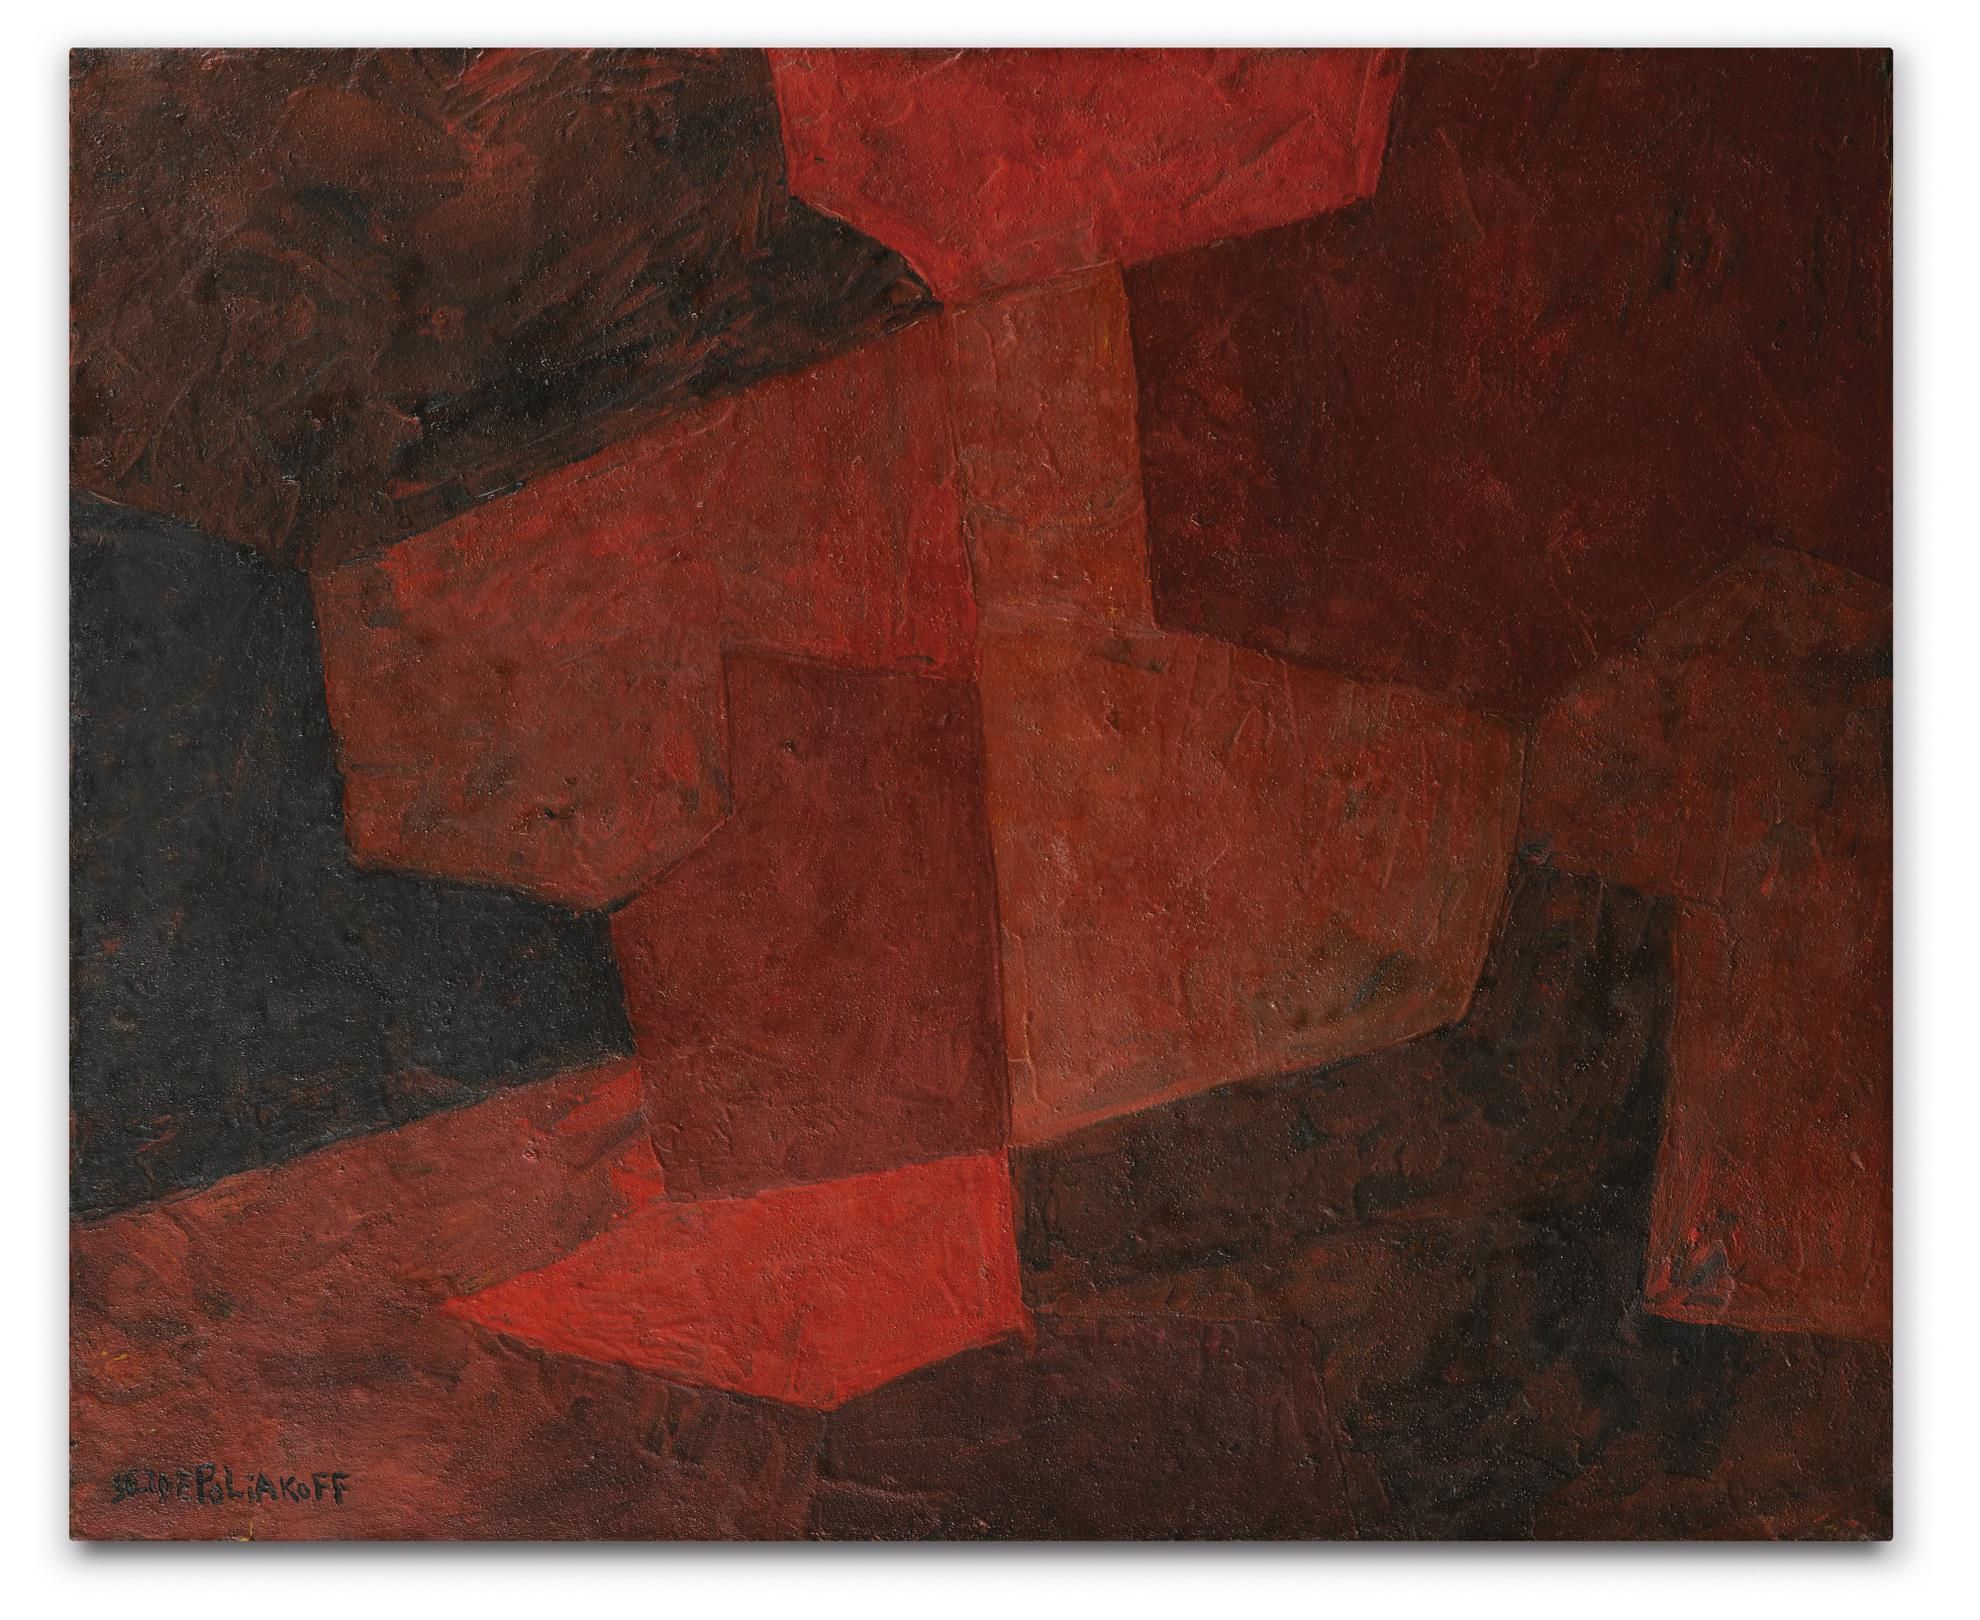 Serge Poliakoff-Composition-1964